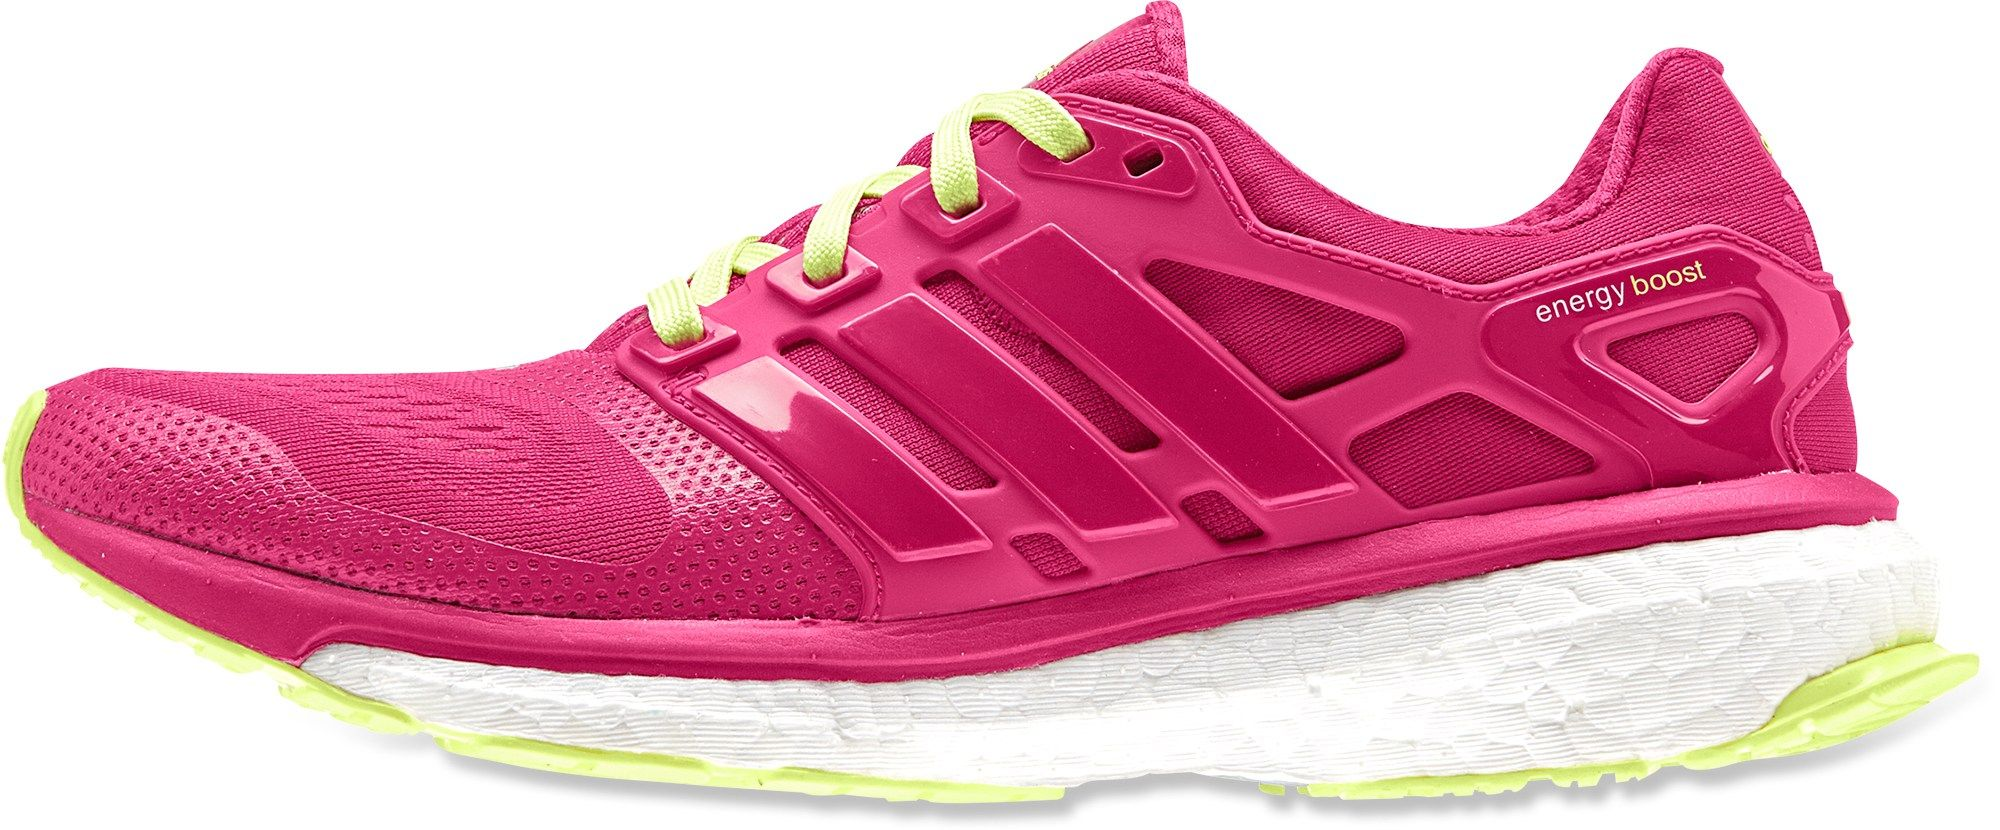 73171c7238bcb Adidas Female Energy Boost 2 Esm Road-Running Shoes - Women s